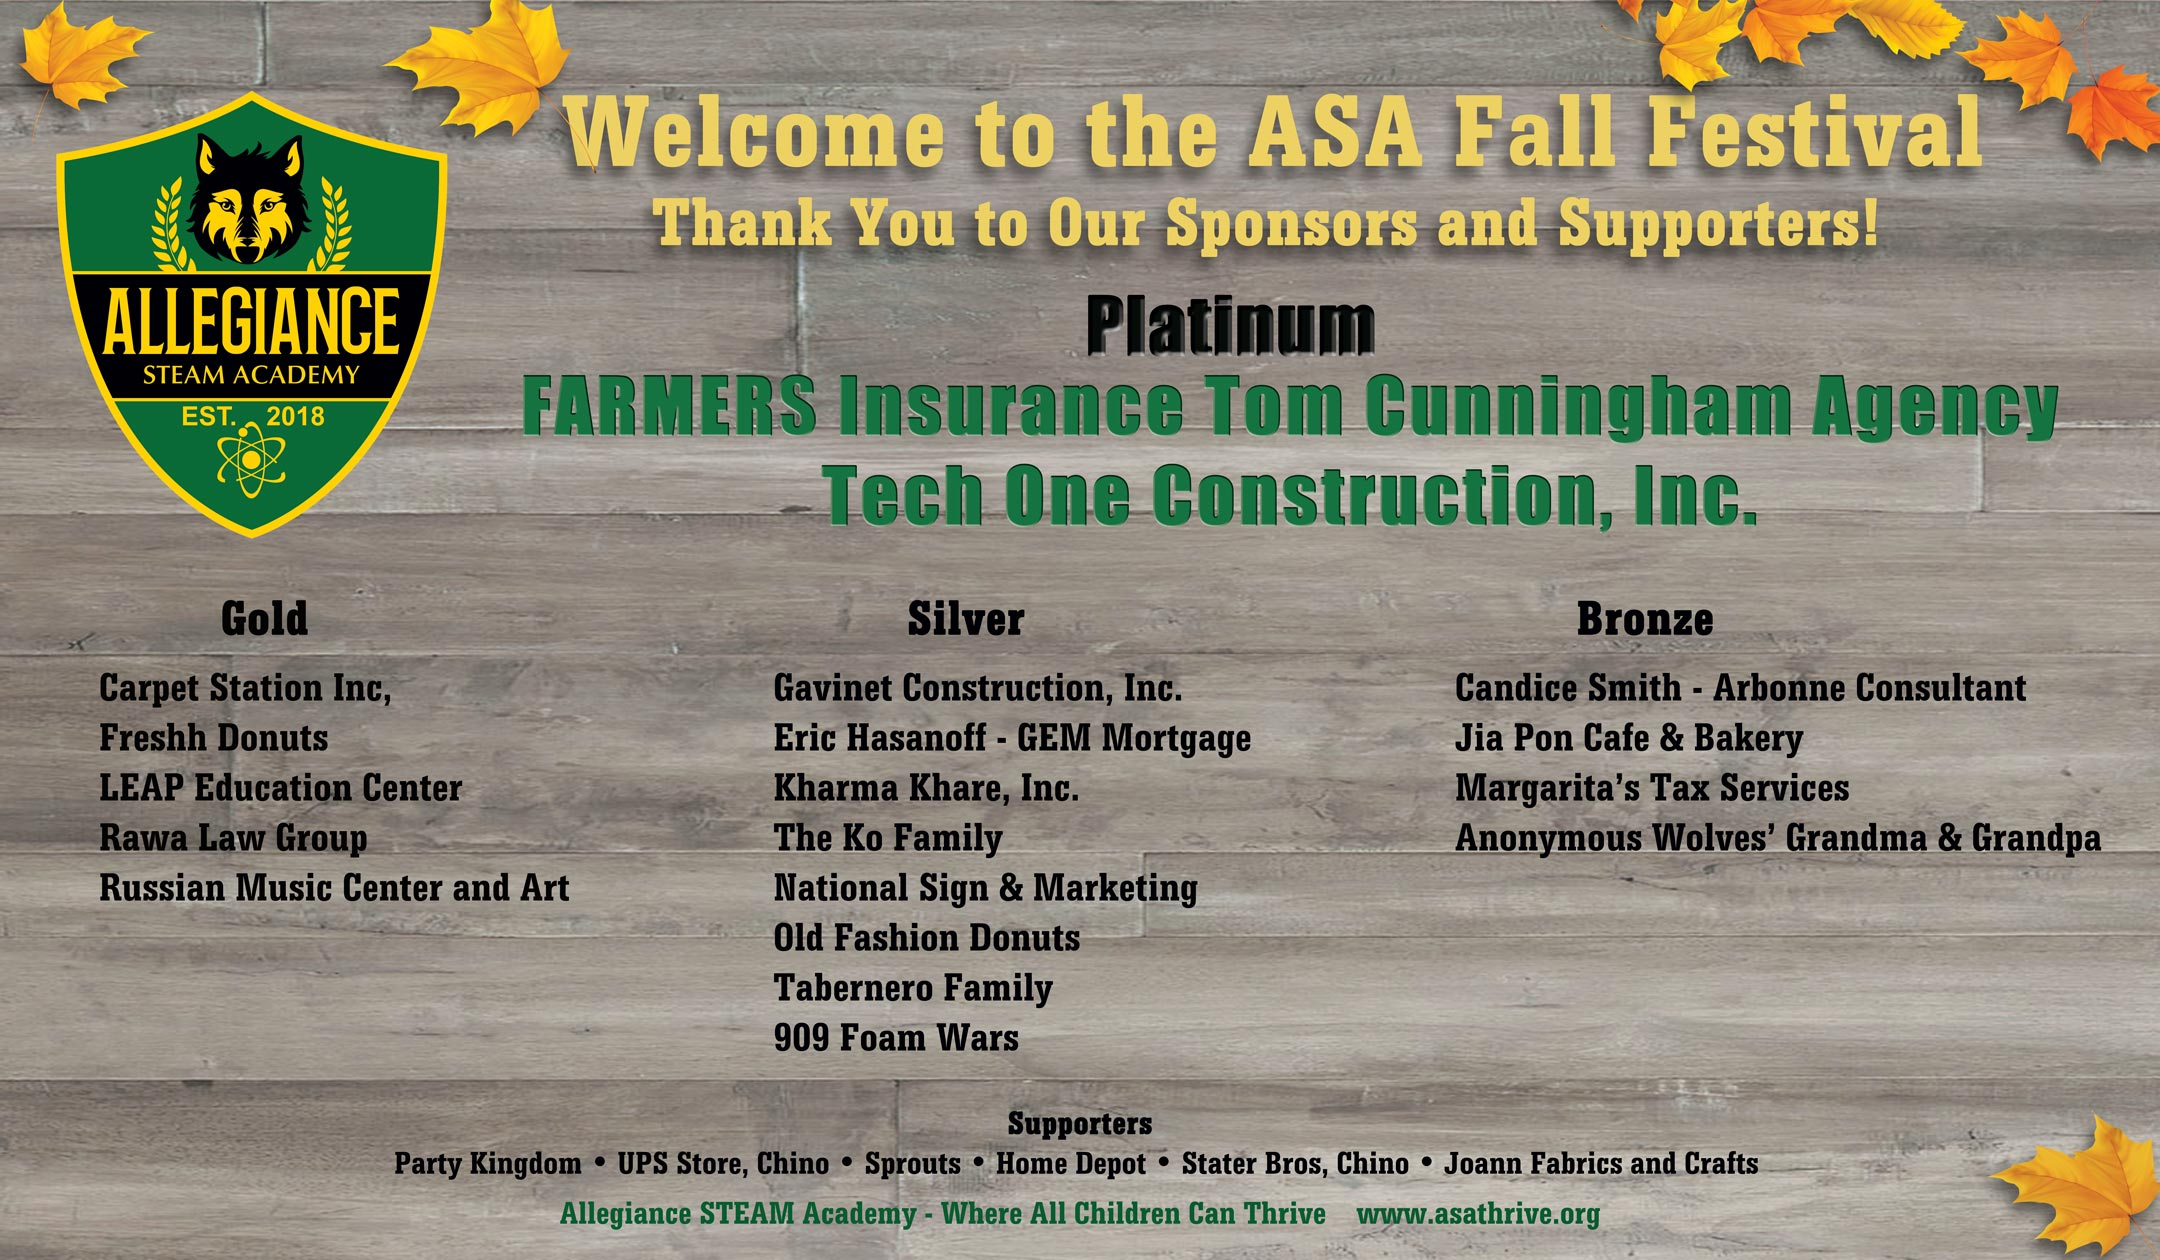 2018 ASA Fall Festival - Thank You to our sponsors